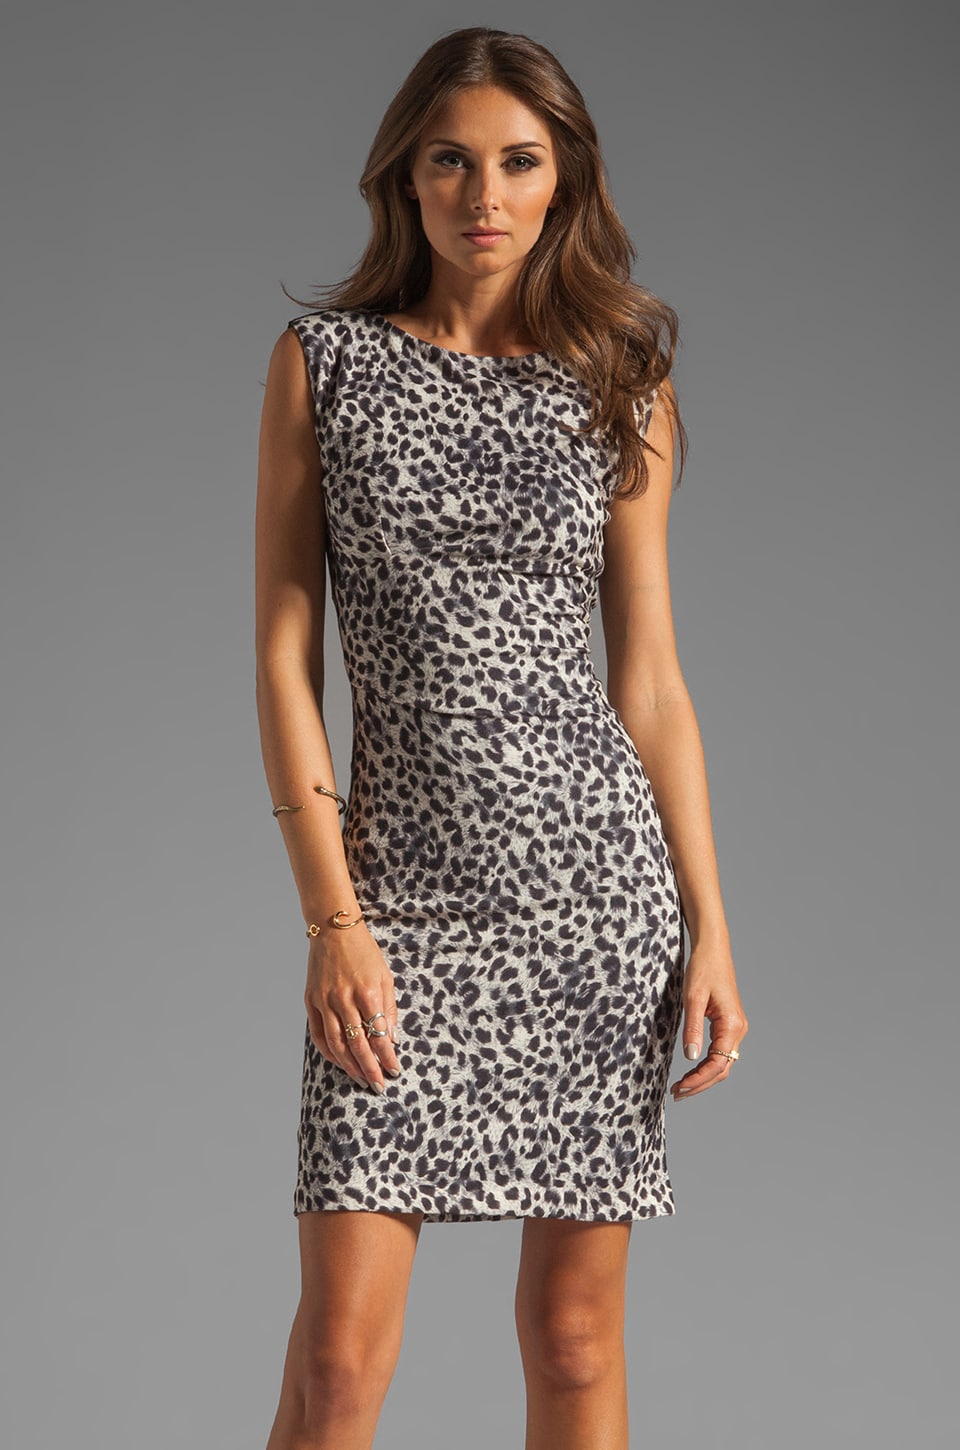 Rebecca Taylor Leopard Print Dress in Black and Cream